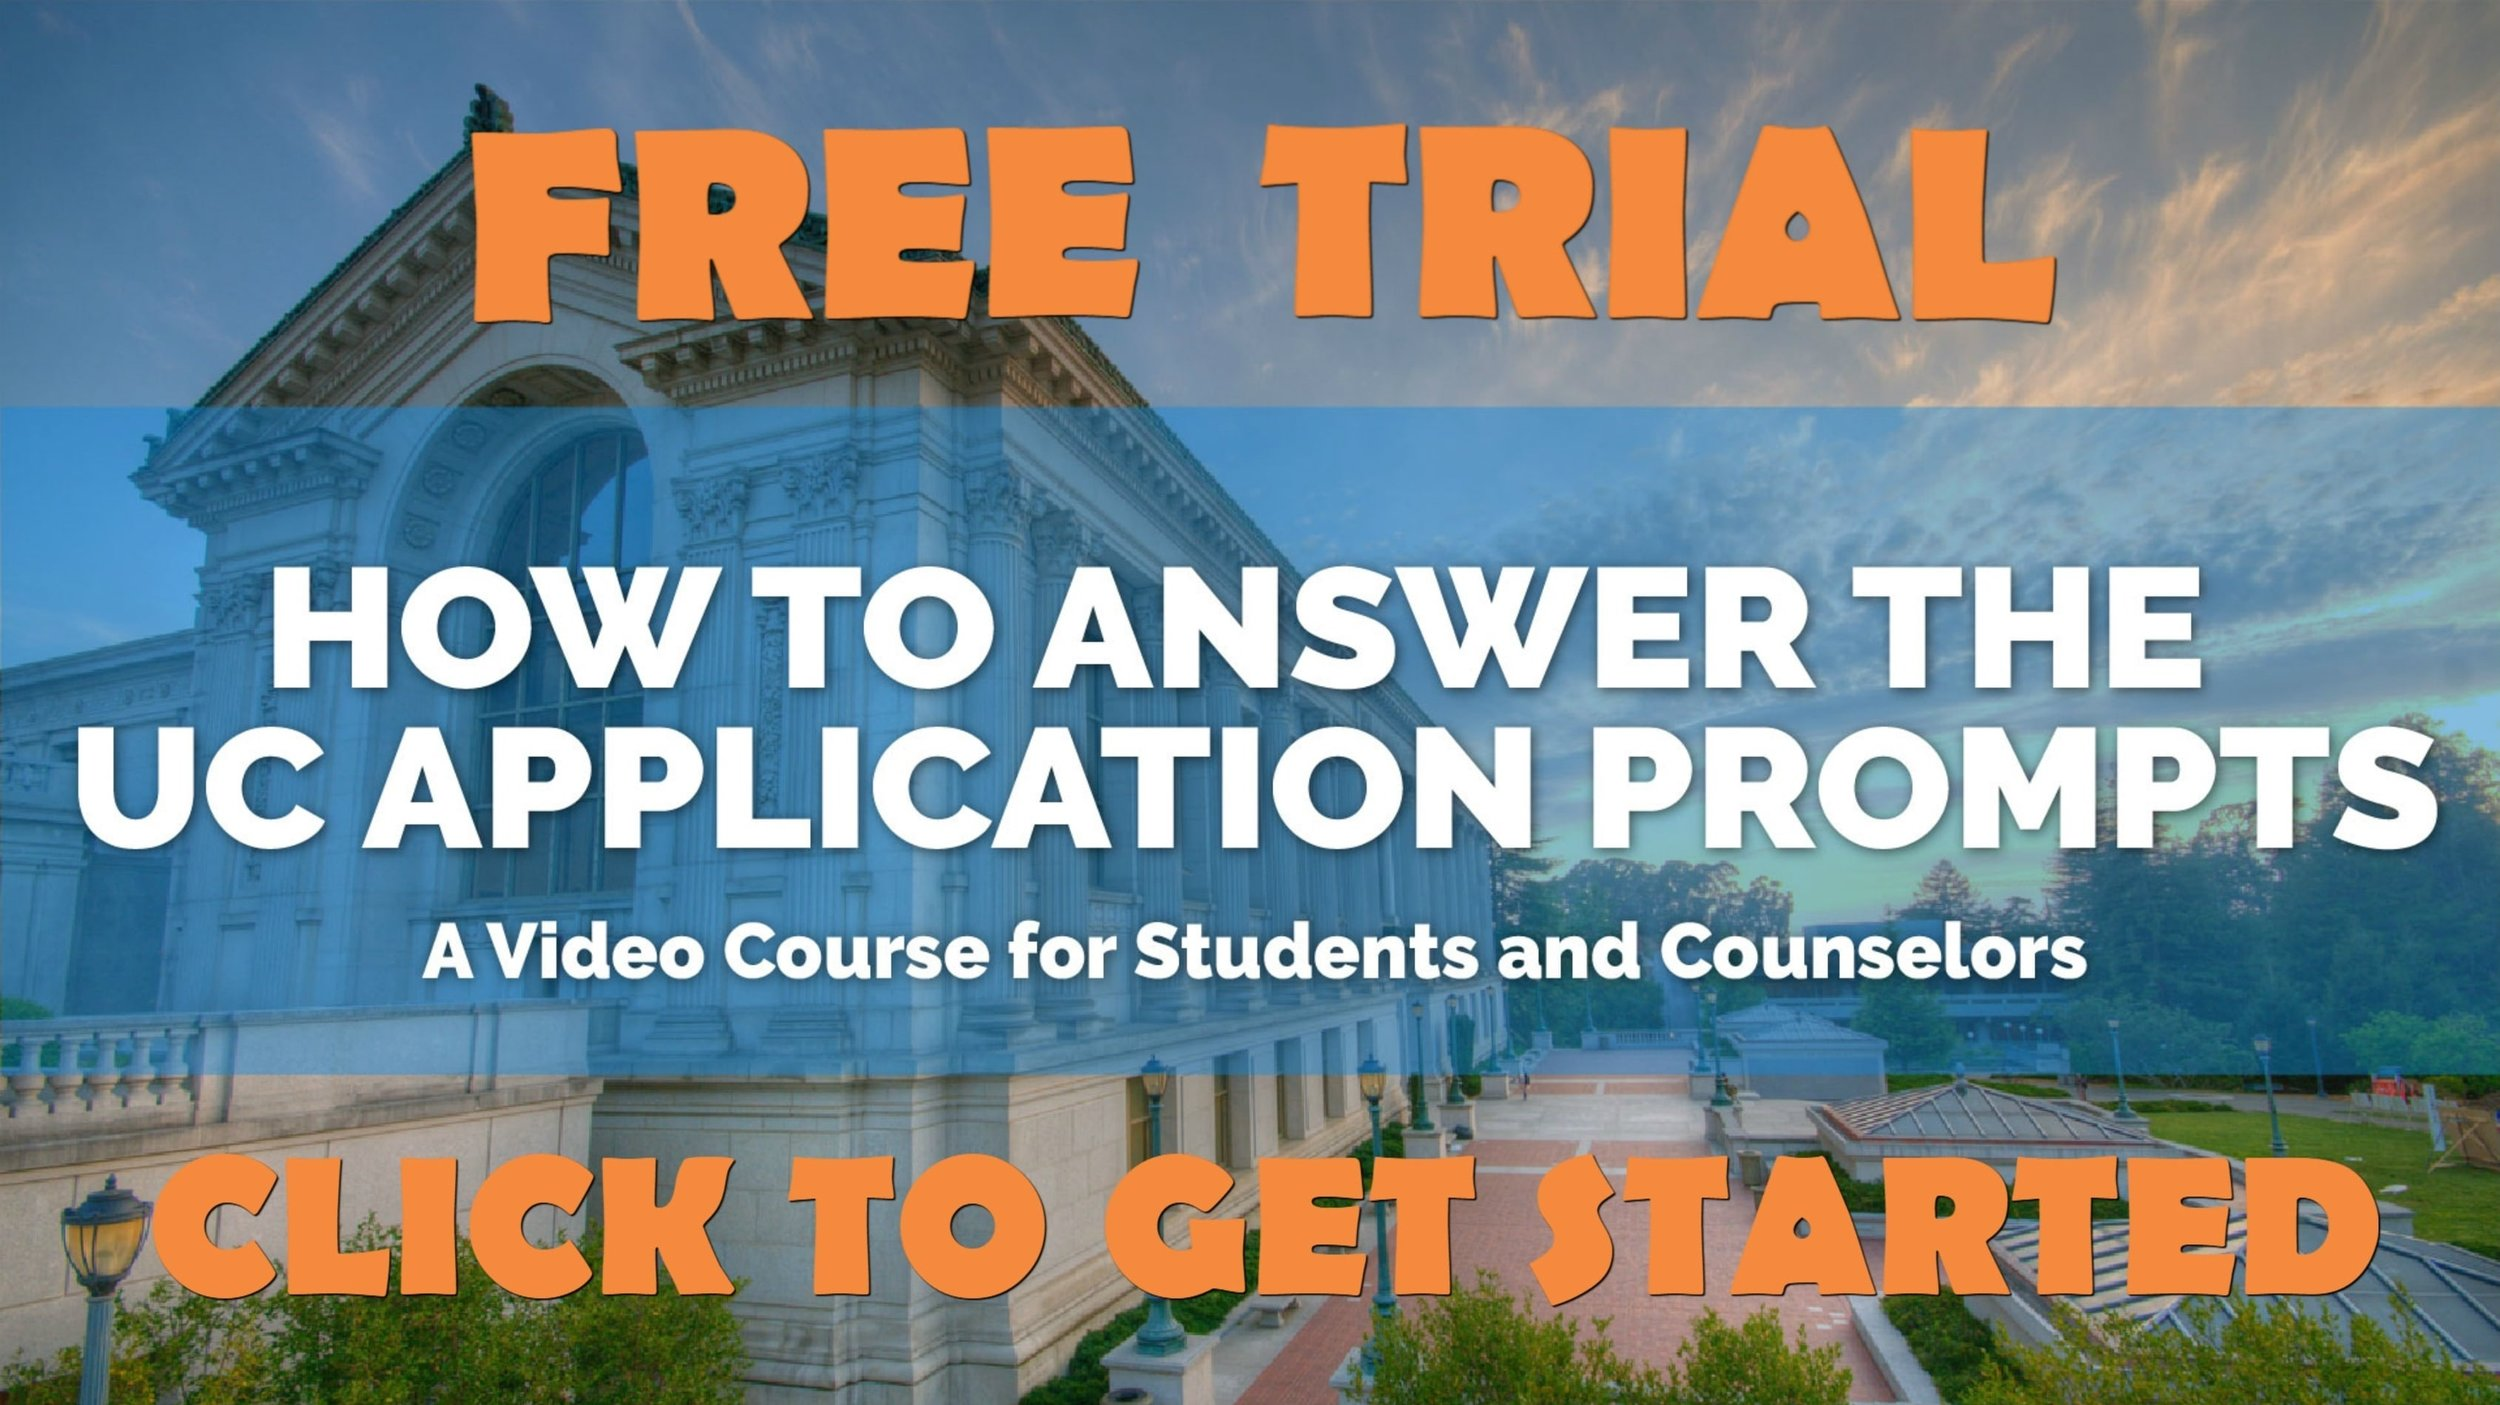 How to Answer the UC Application Prompts Course 2018 Video Banner TRIAL-min.jpg